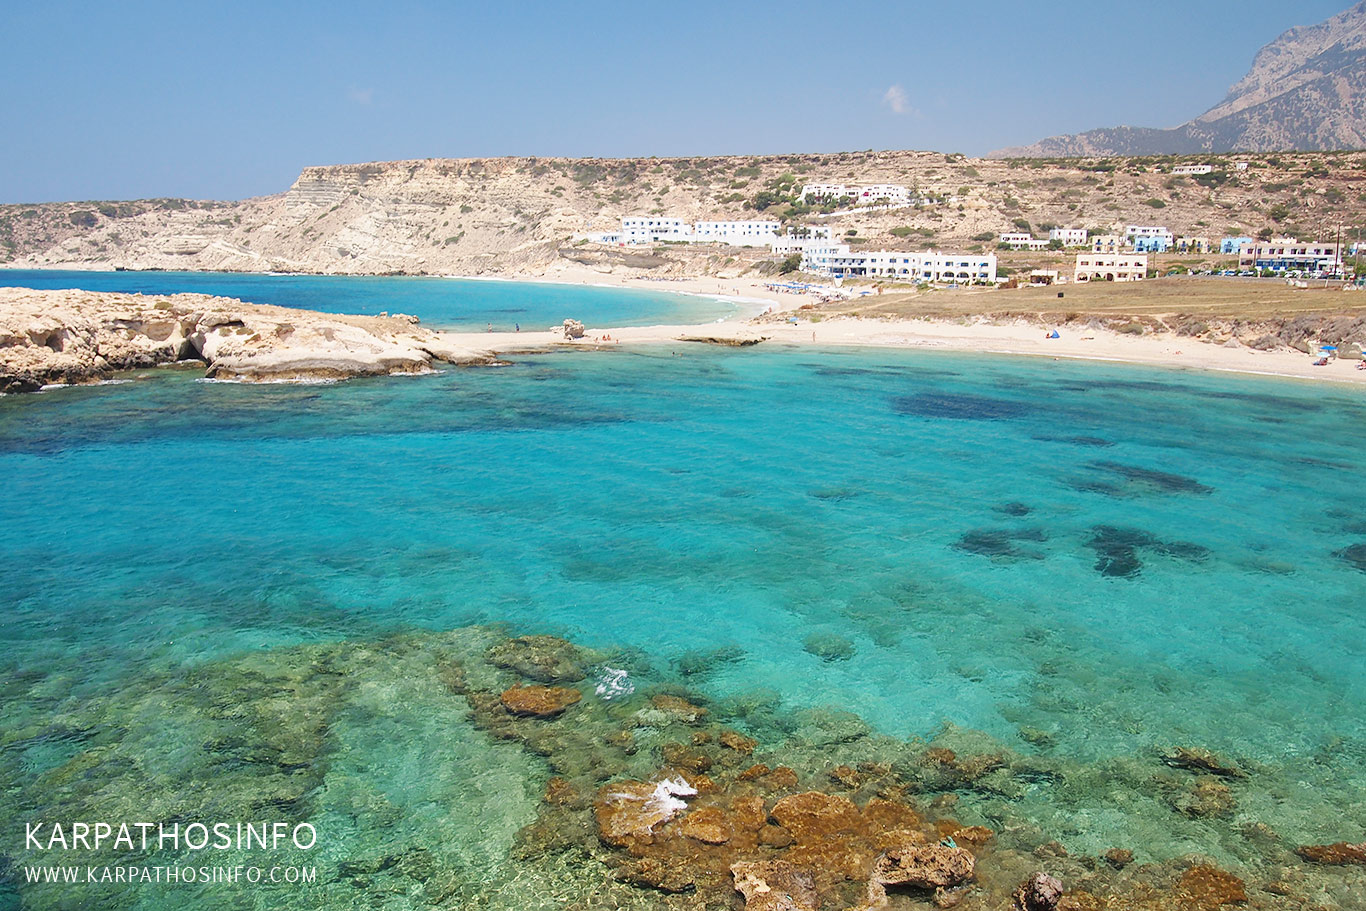 The best beaches in Karpathos - Lefkos